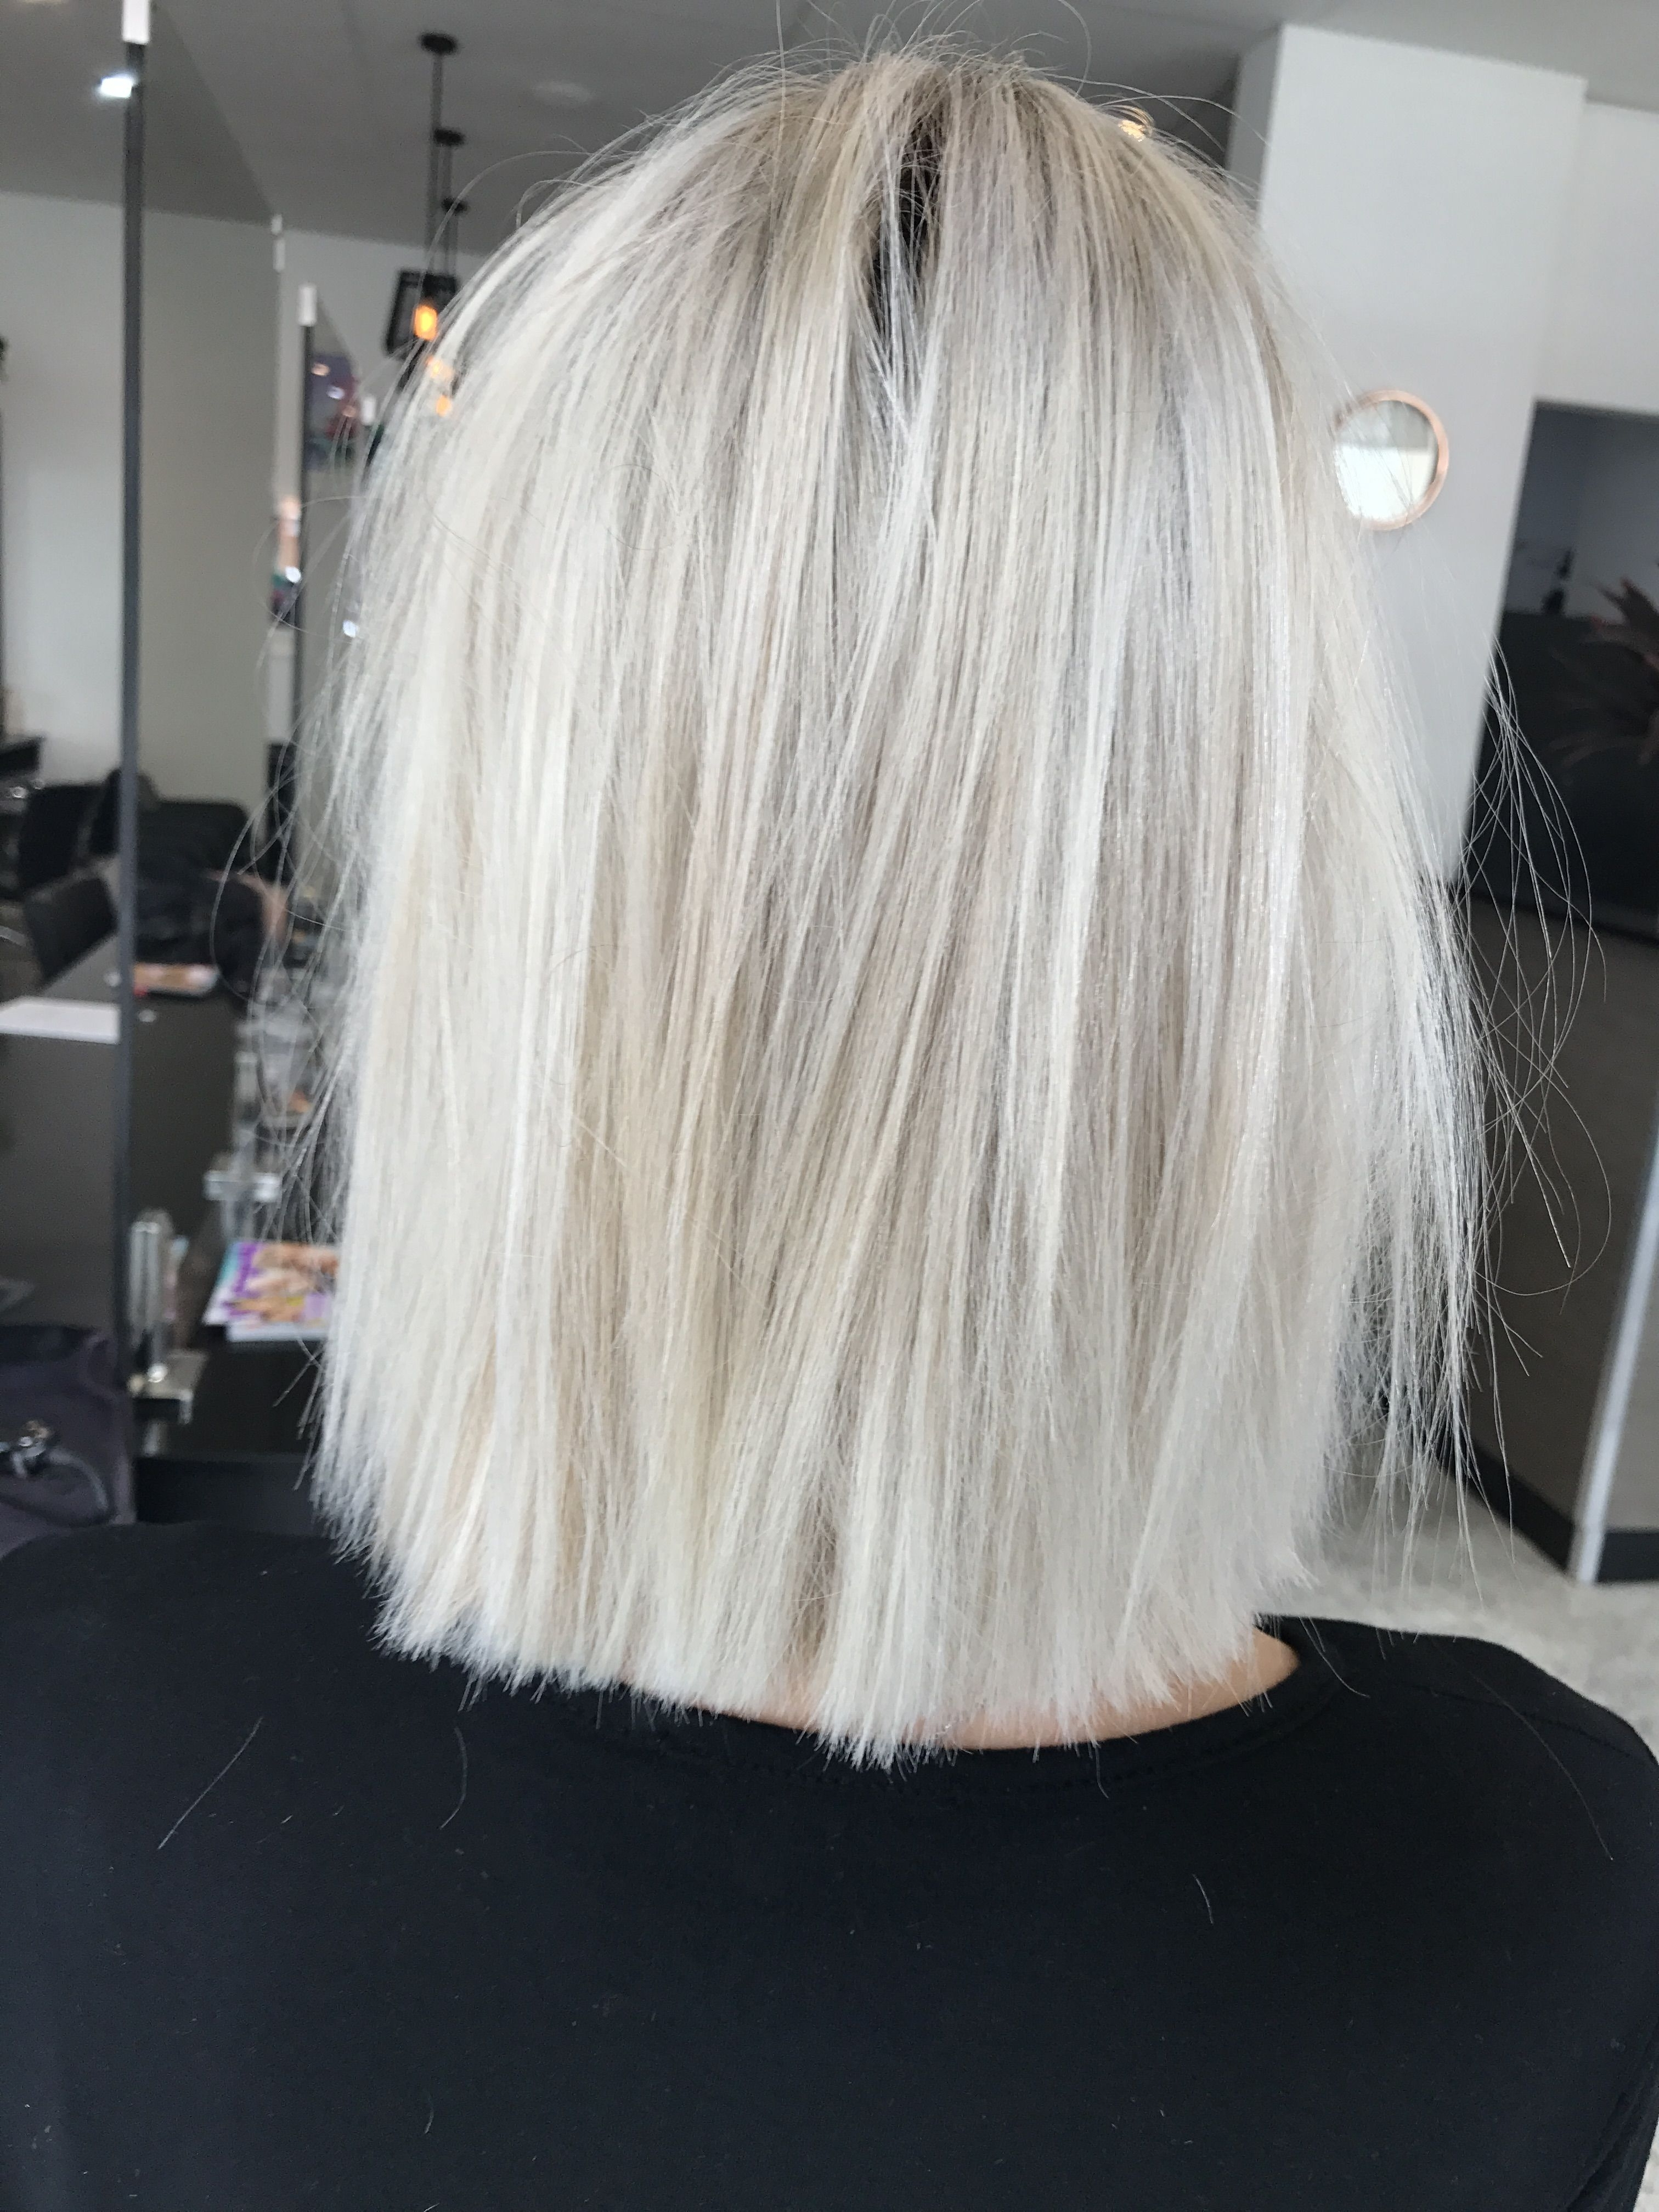 Popular Ash Blonde Lob With Subtle Waves In Blonde Hair Short Lob Textured Straight Hair Cut Colour Cool Ash (View 14 of 20)